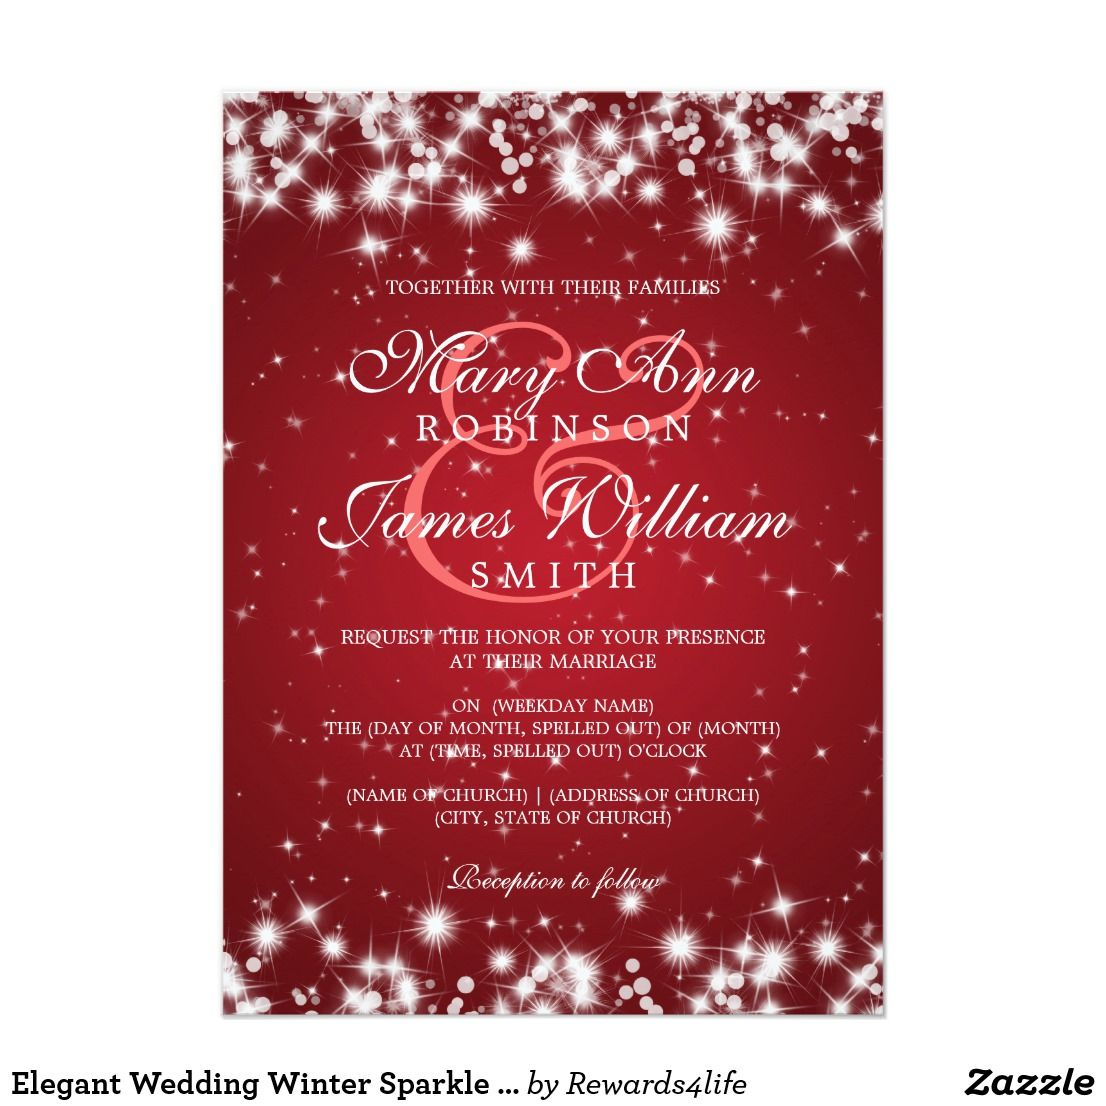 Elegant Wedding Winter Sparkle Red Card | Wedding Ideas | Pinterest ...